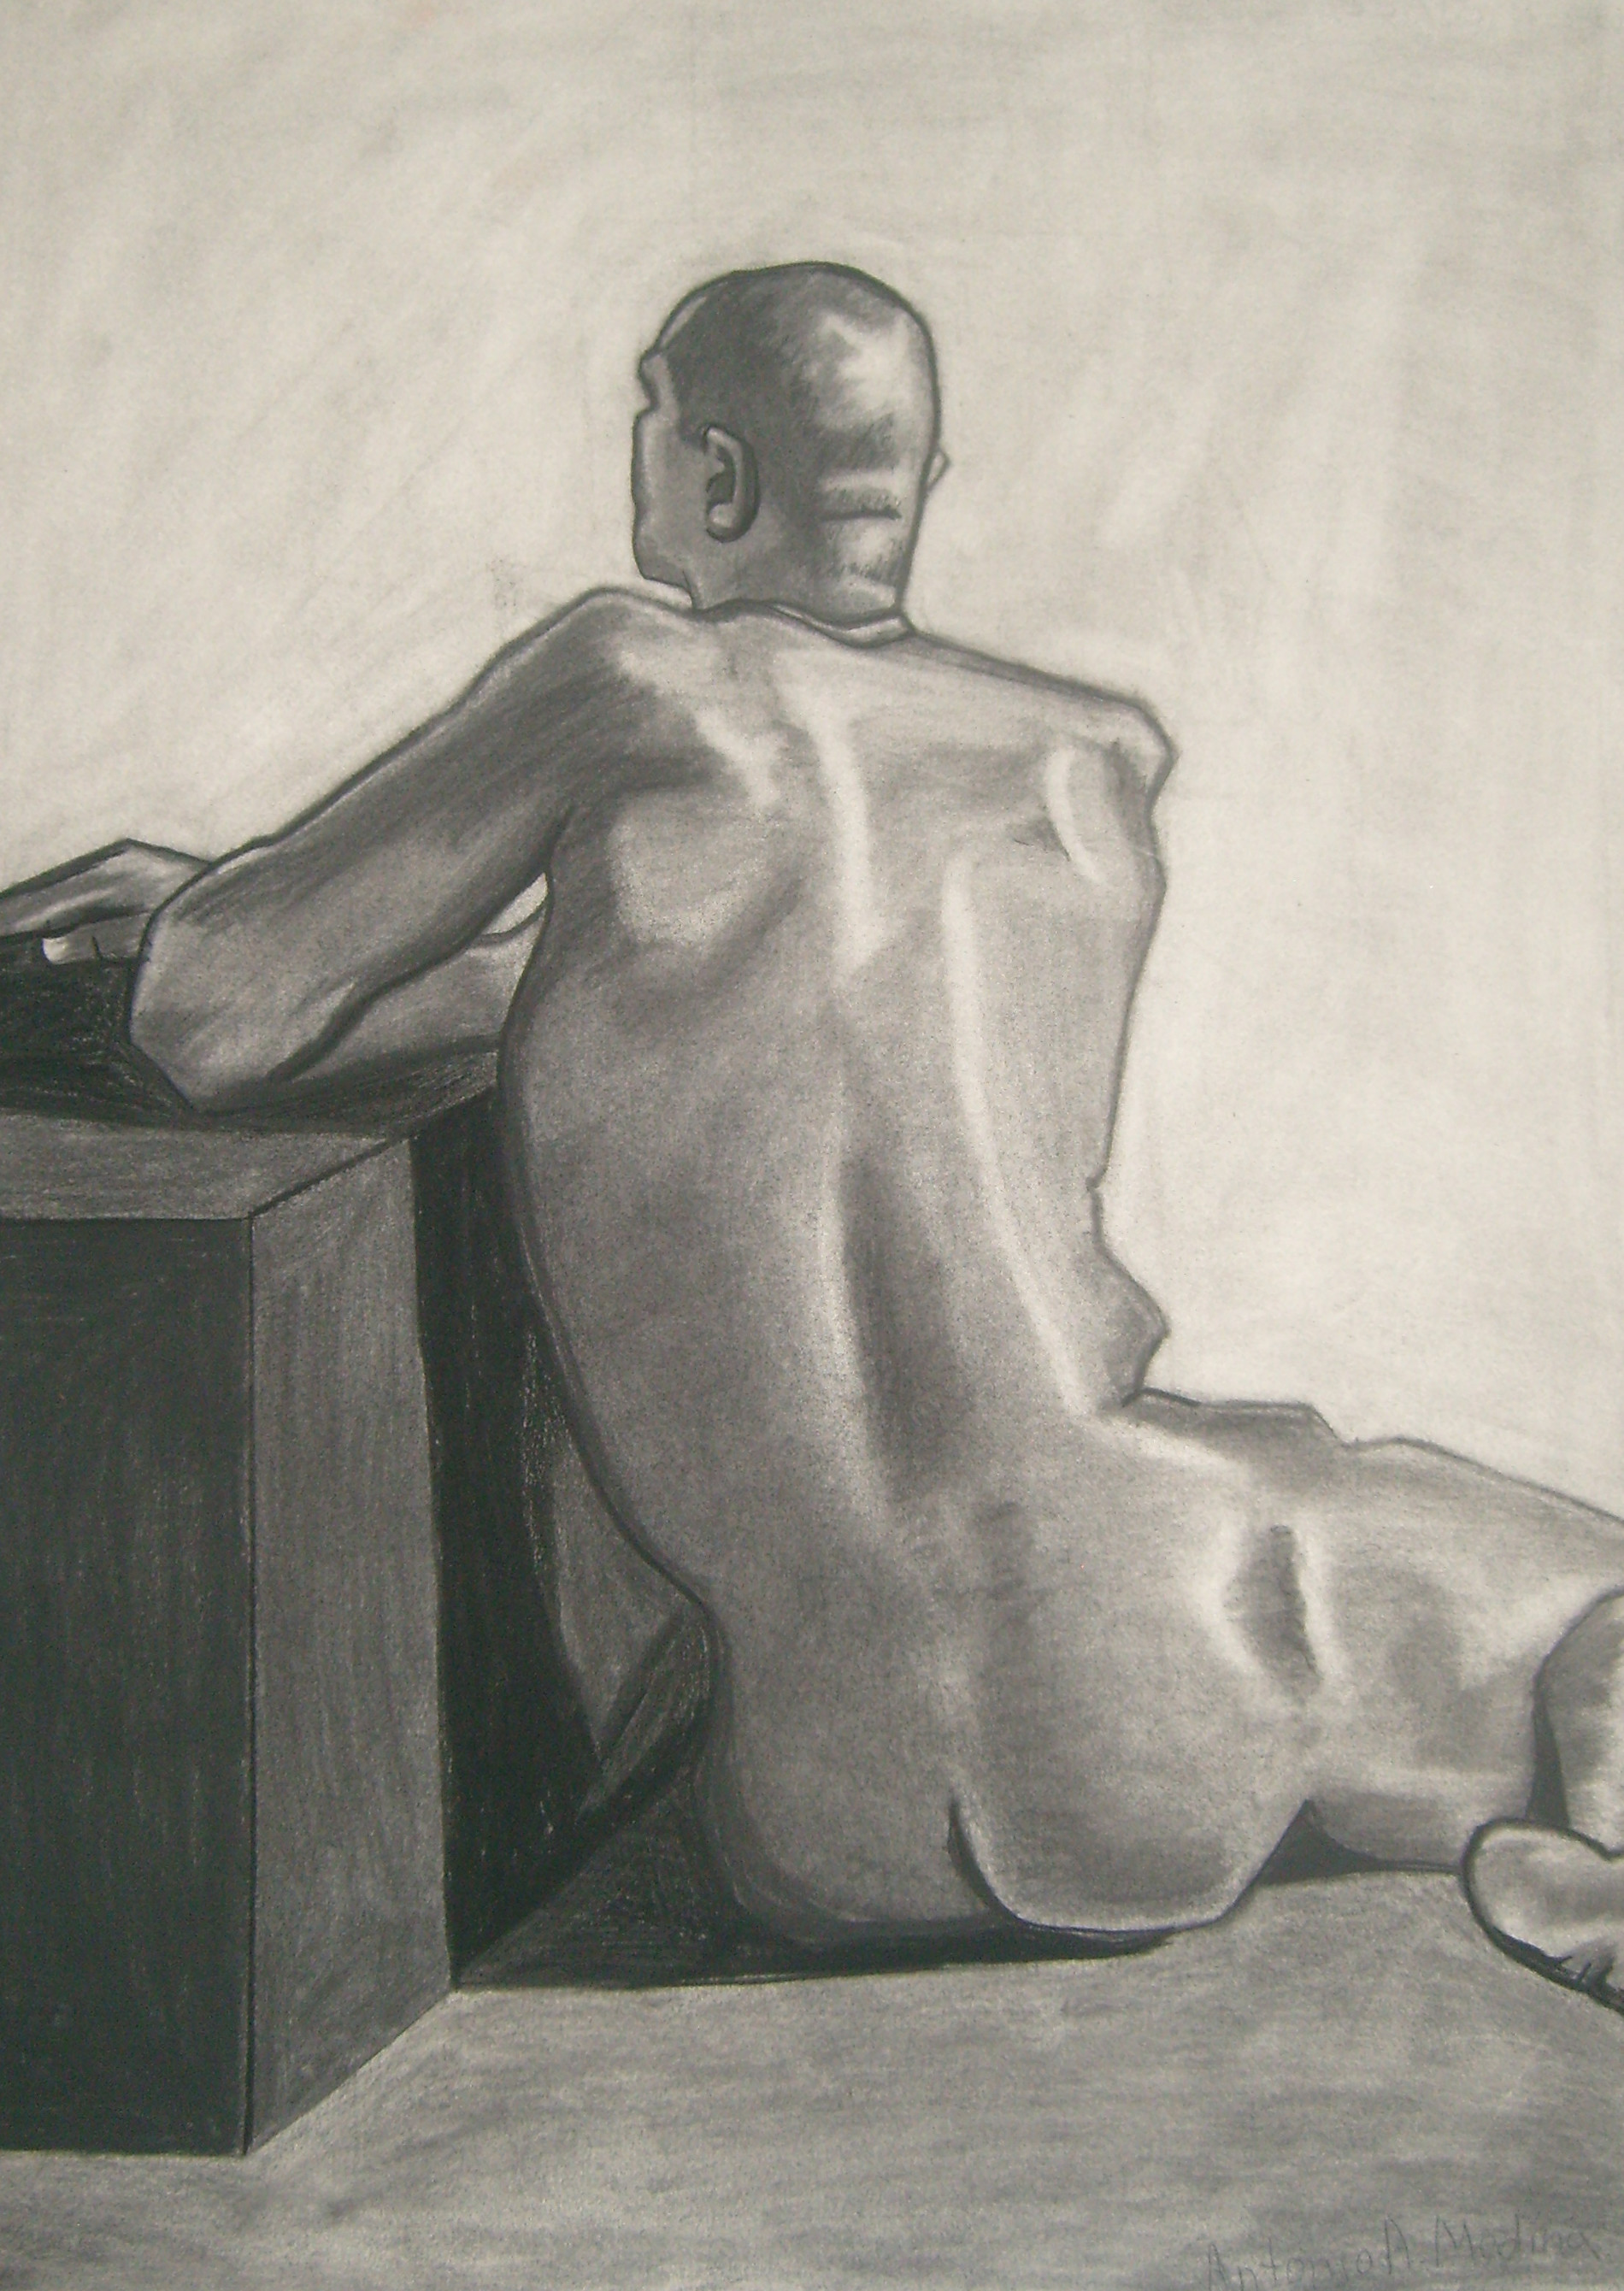 Antonio medina life drawing 003